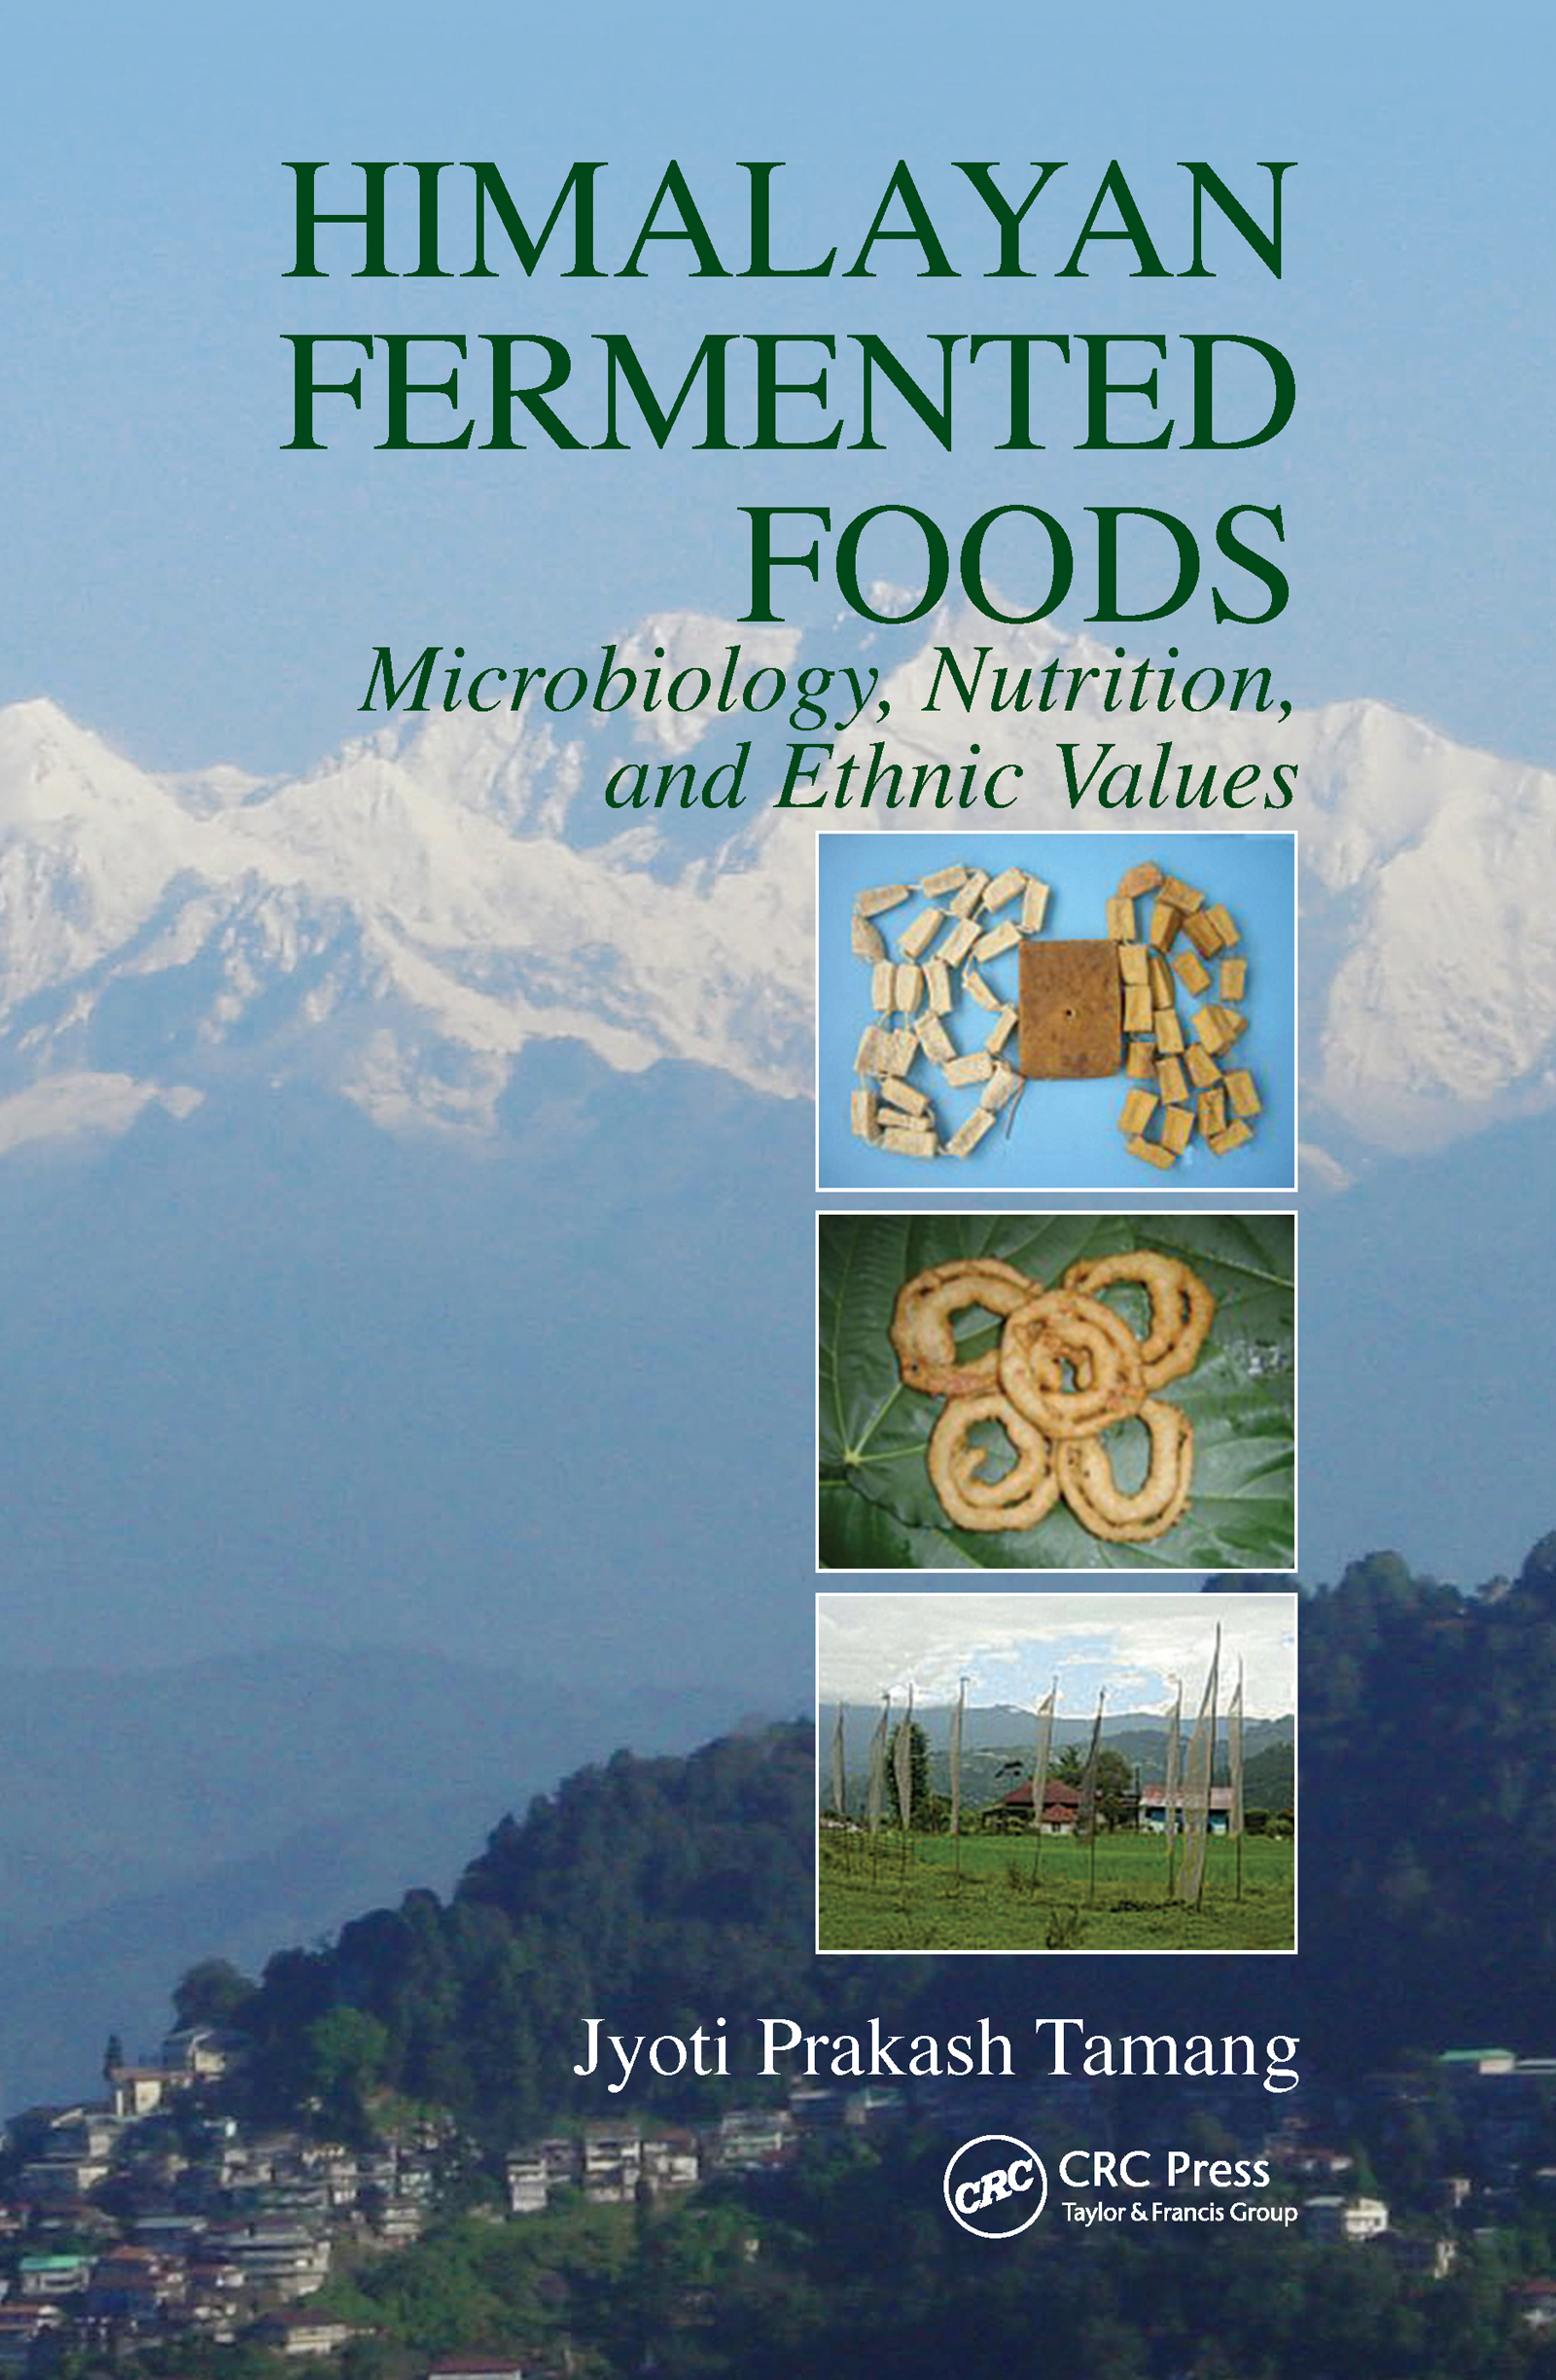 Himalayan Fermented Foods: Microbiology, Nutrition, and Ethnic Values, 1st Edition (Hardback) book cover